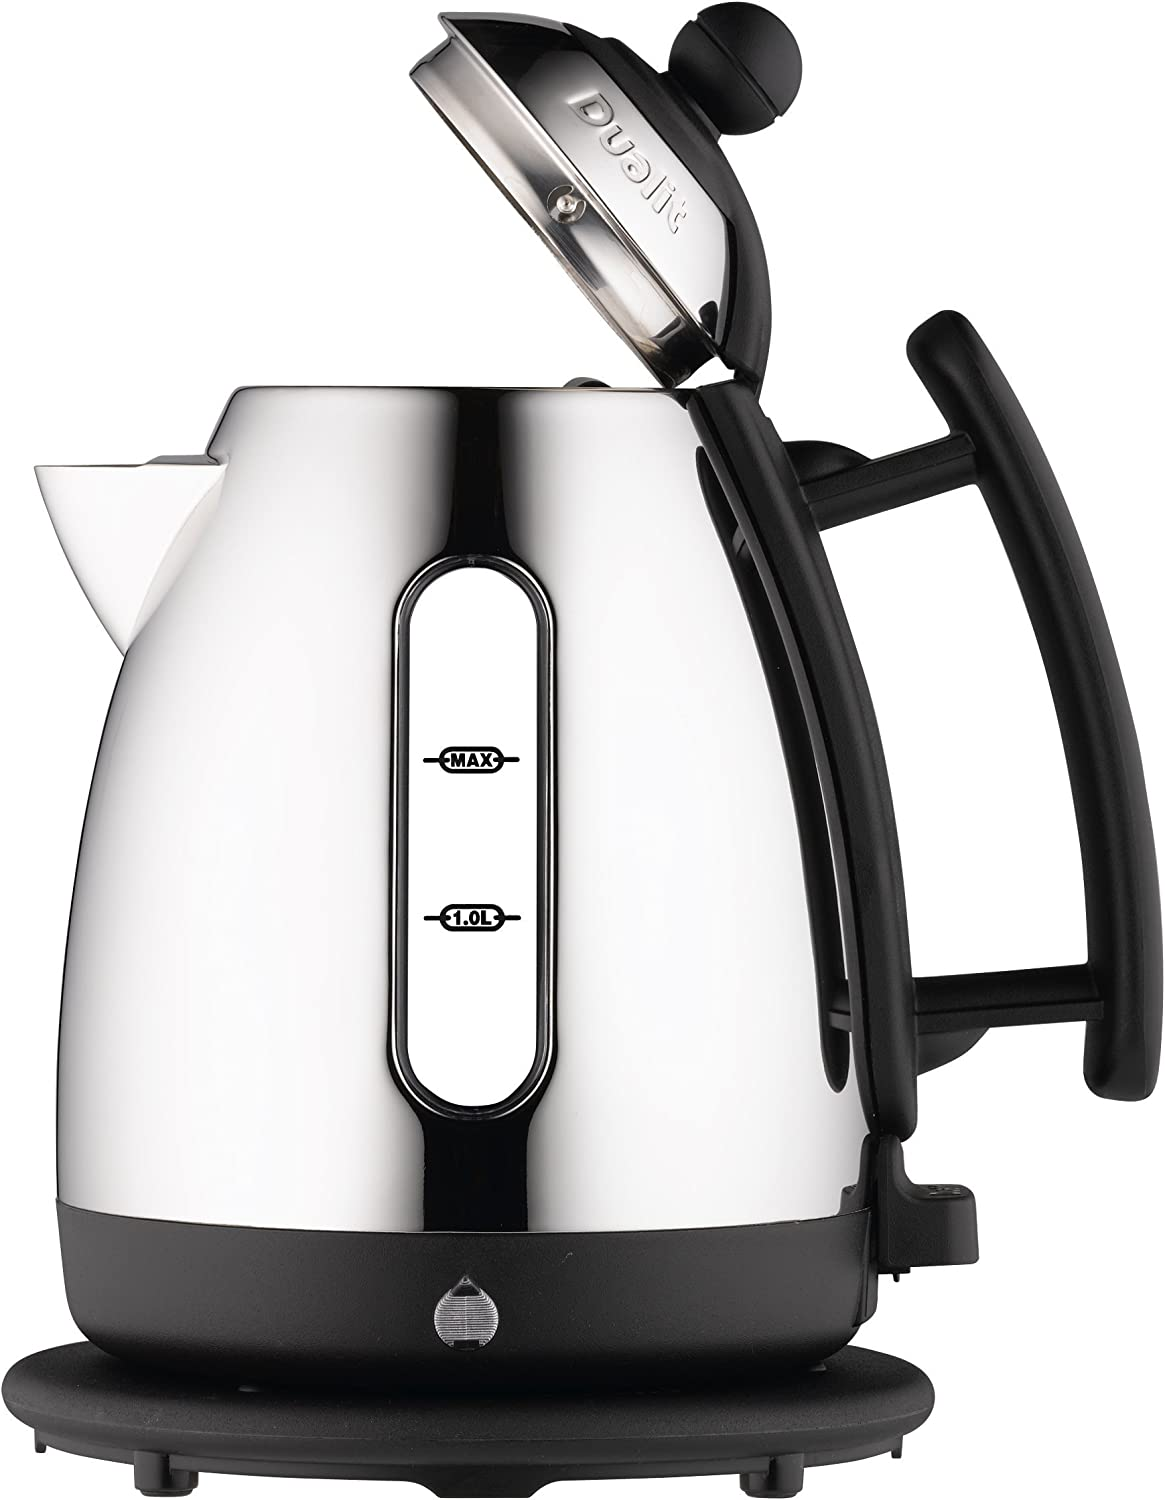 Dualit Cordless 6-Cup Kettle Limited price Chrome Jug Las Vegas Mall